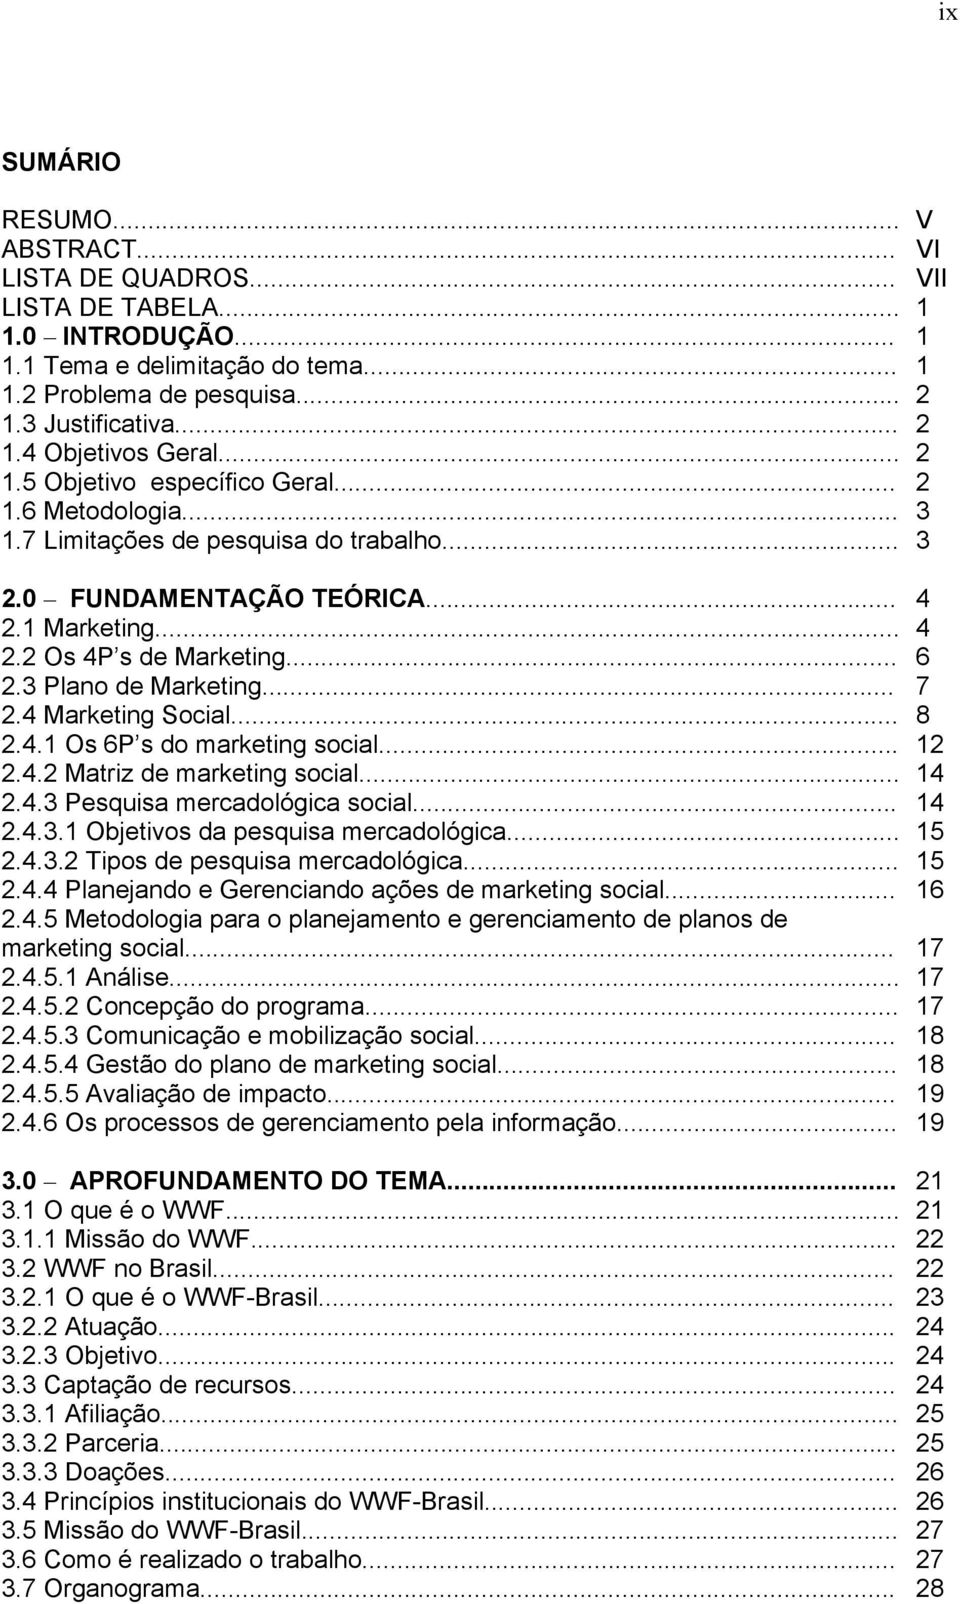 3 Plano de Marketing... 7 2.4 Marketing Social... 8 2.4.1 Os 6P s do marketing social... 12 2.4.2 Matriz de marketing social... 14 2.4.3 Pesquisa mercadológica social... 14 2.4.3.1 Objetivos da pesquisa mercadológica.